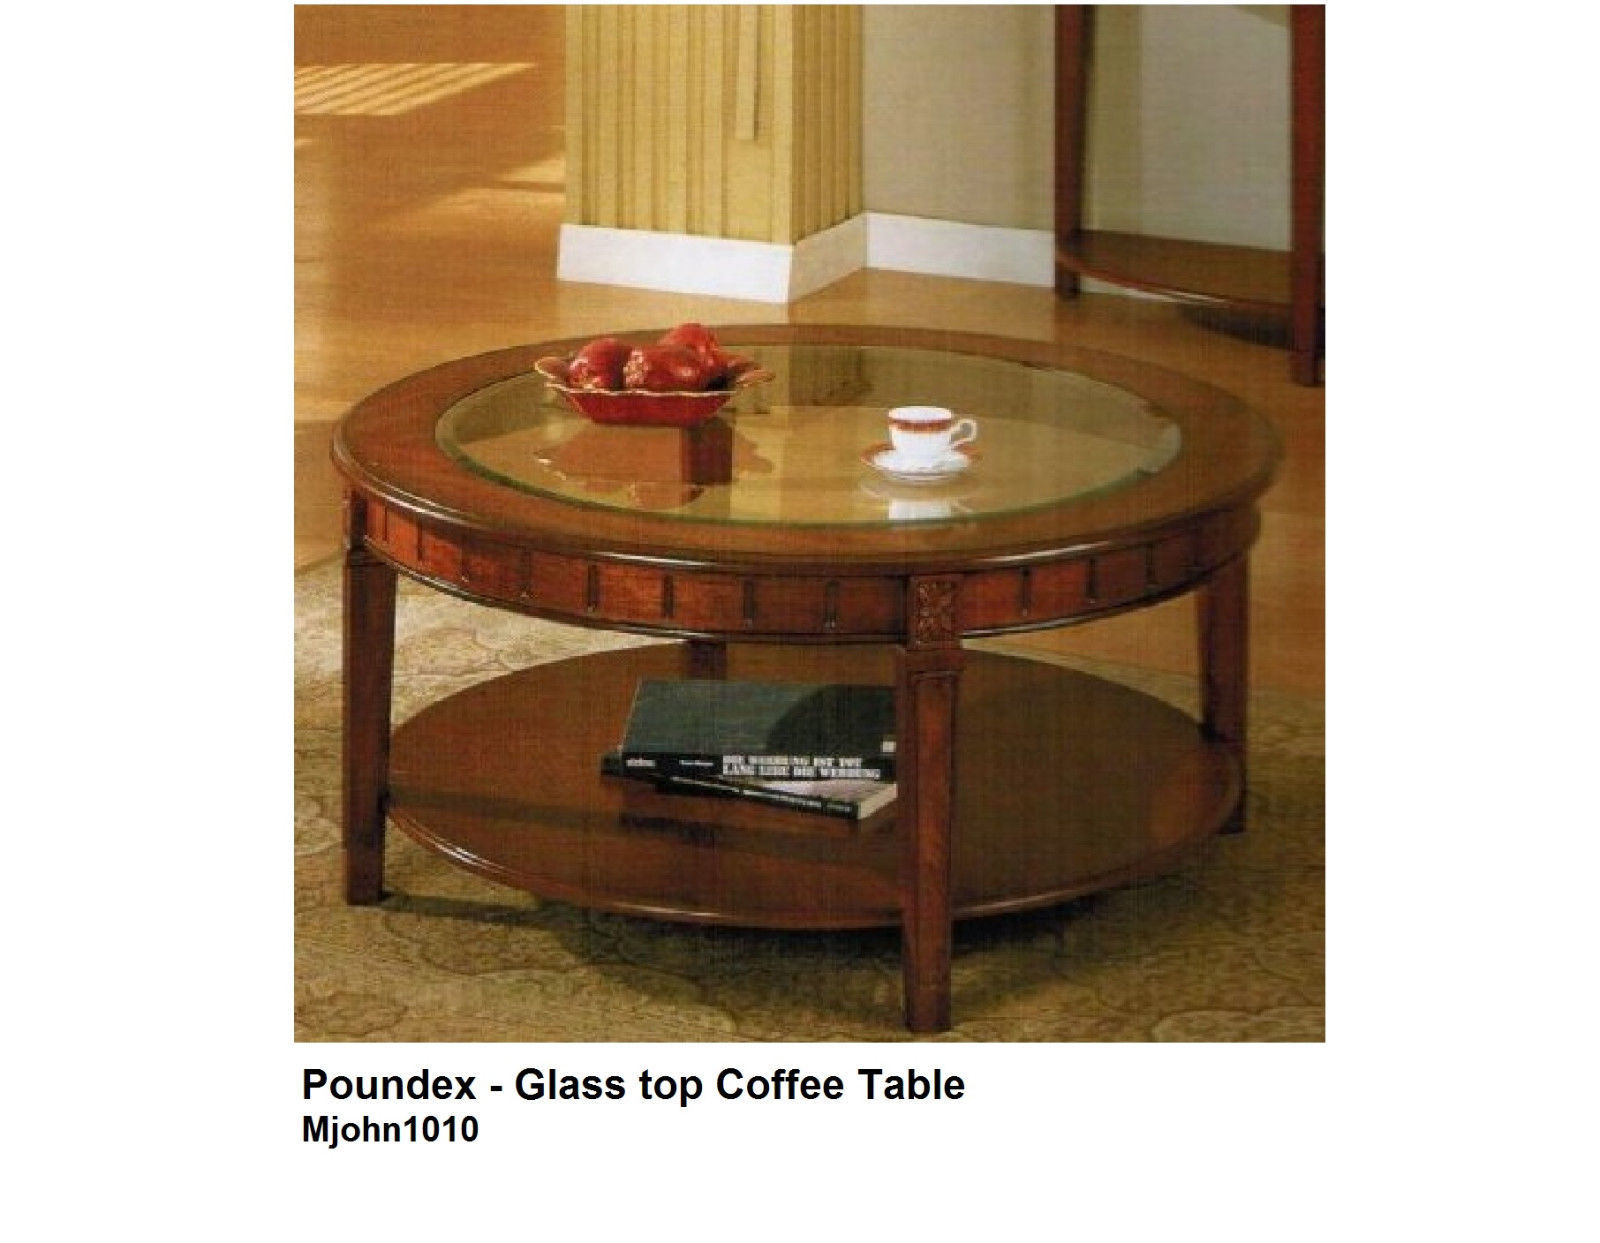 Glass Top Coffee Table With Storage Shelf In Cherry Brown Finish Tables